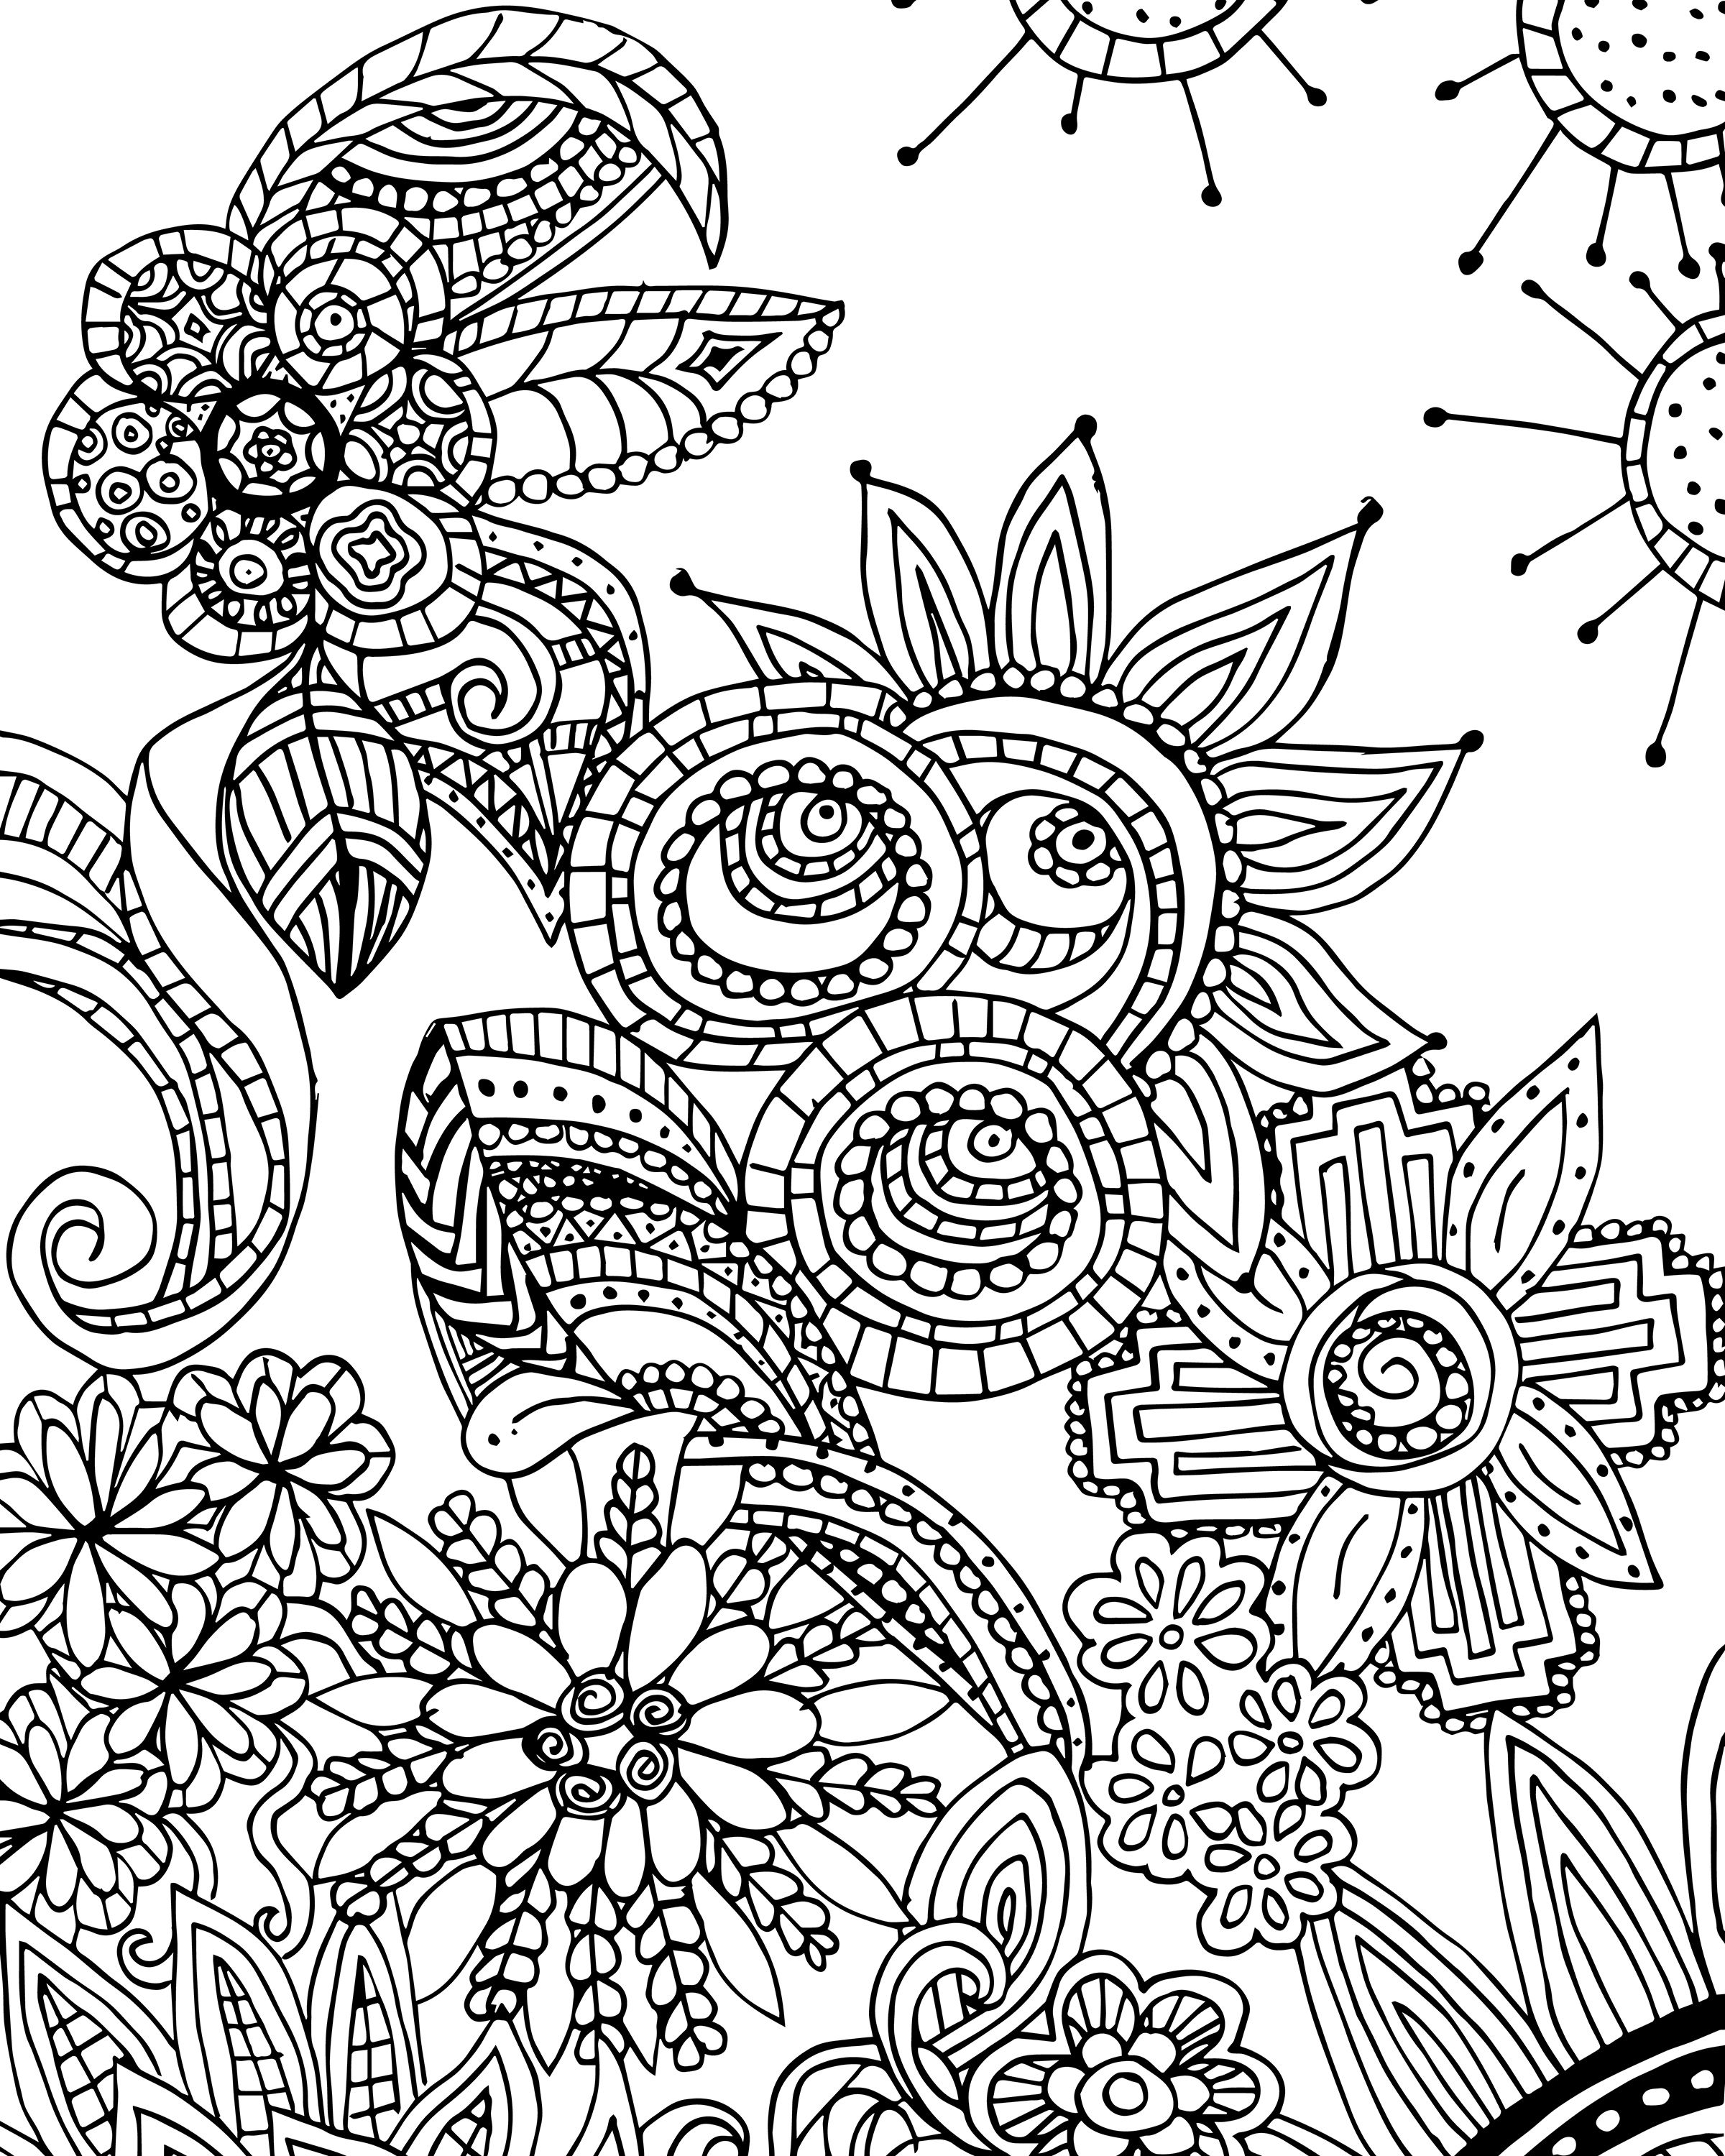 Free Coloring Page For Adults Flower Zen Doodle Designs